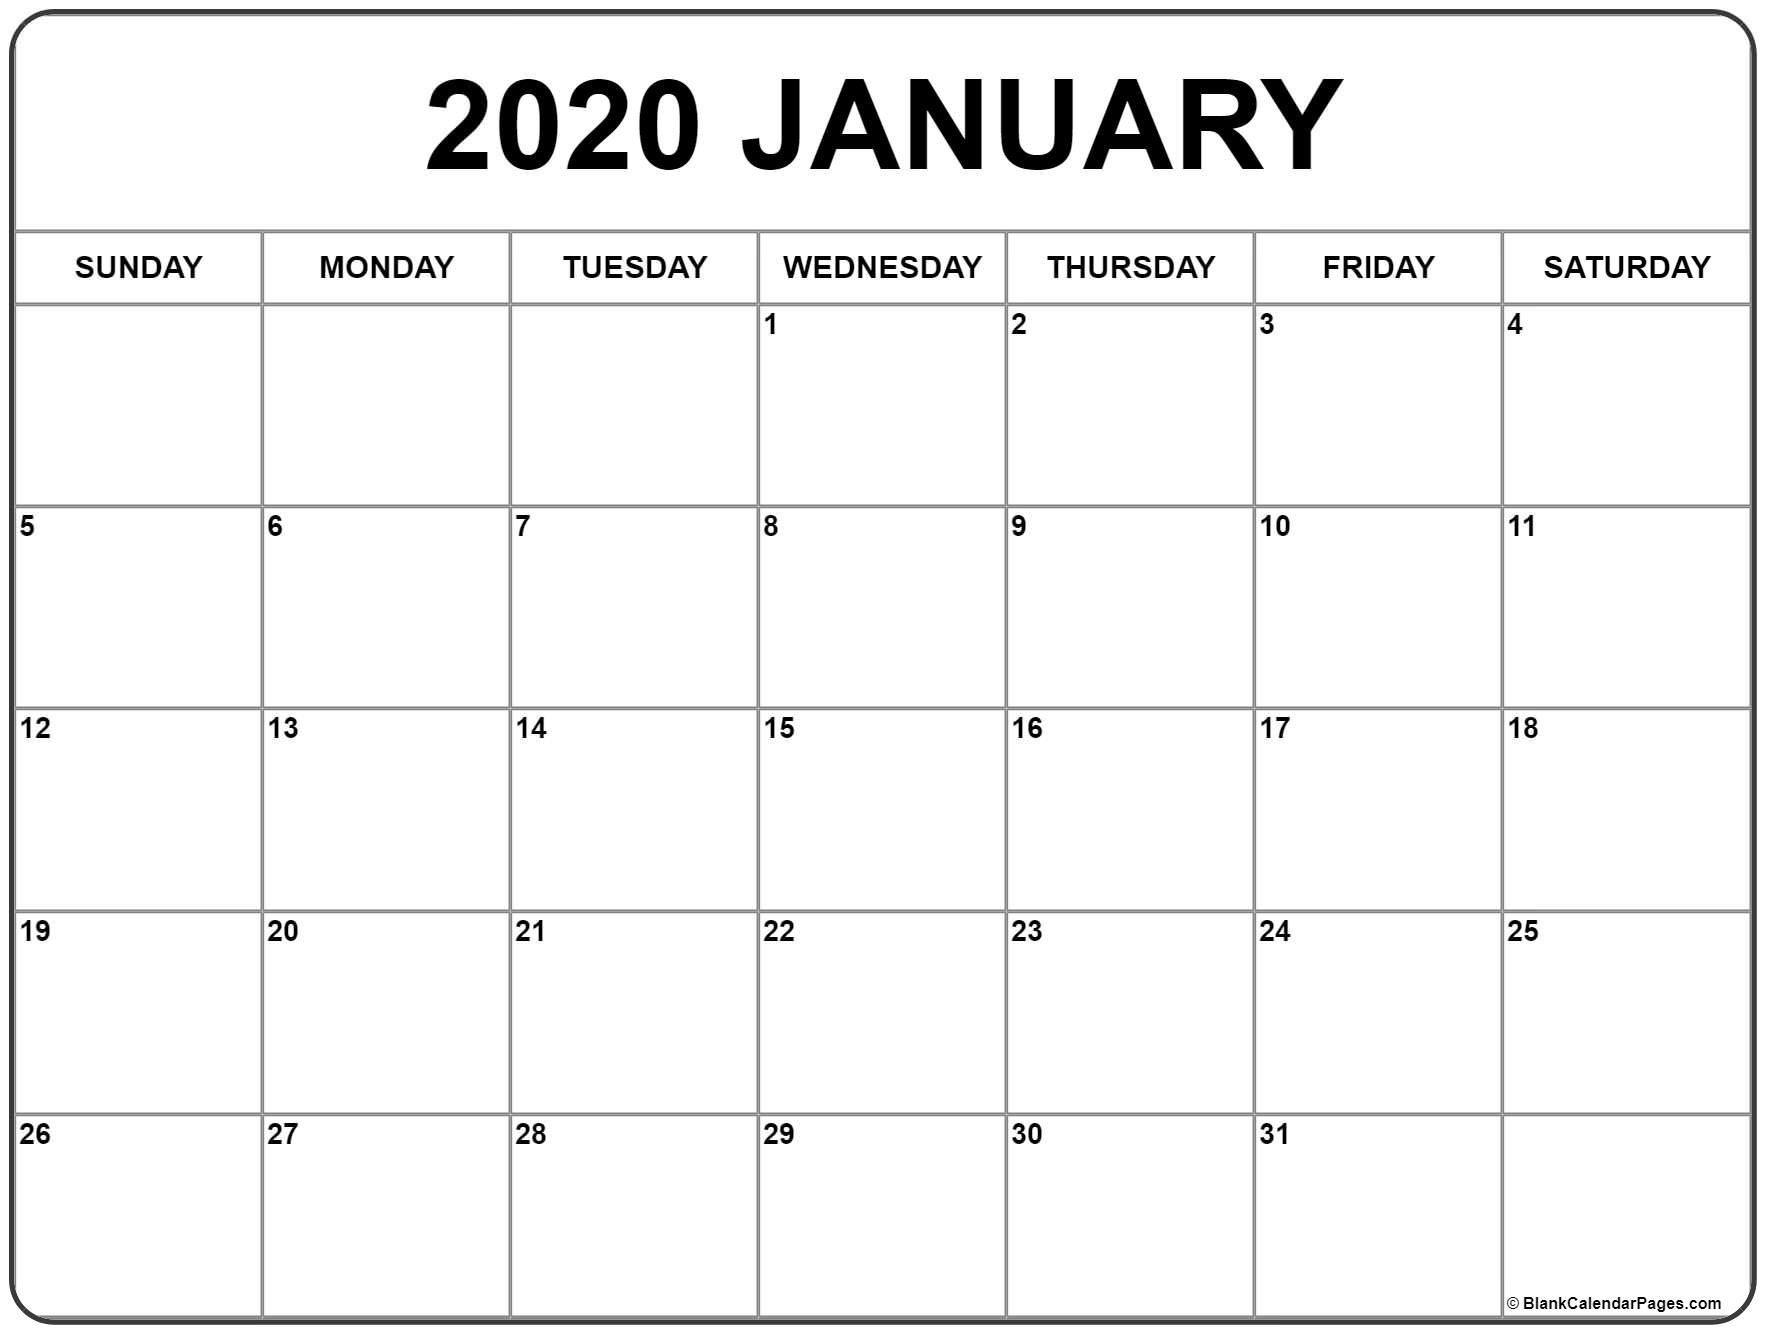 January 2020 Calendar | Free Printable Monthly Calendars with regard to 2020 Calendar Printable Free With Added Oicture